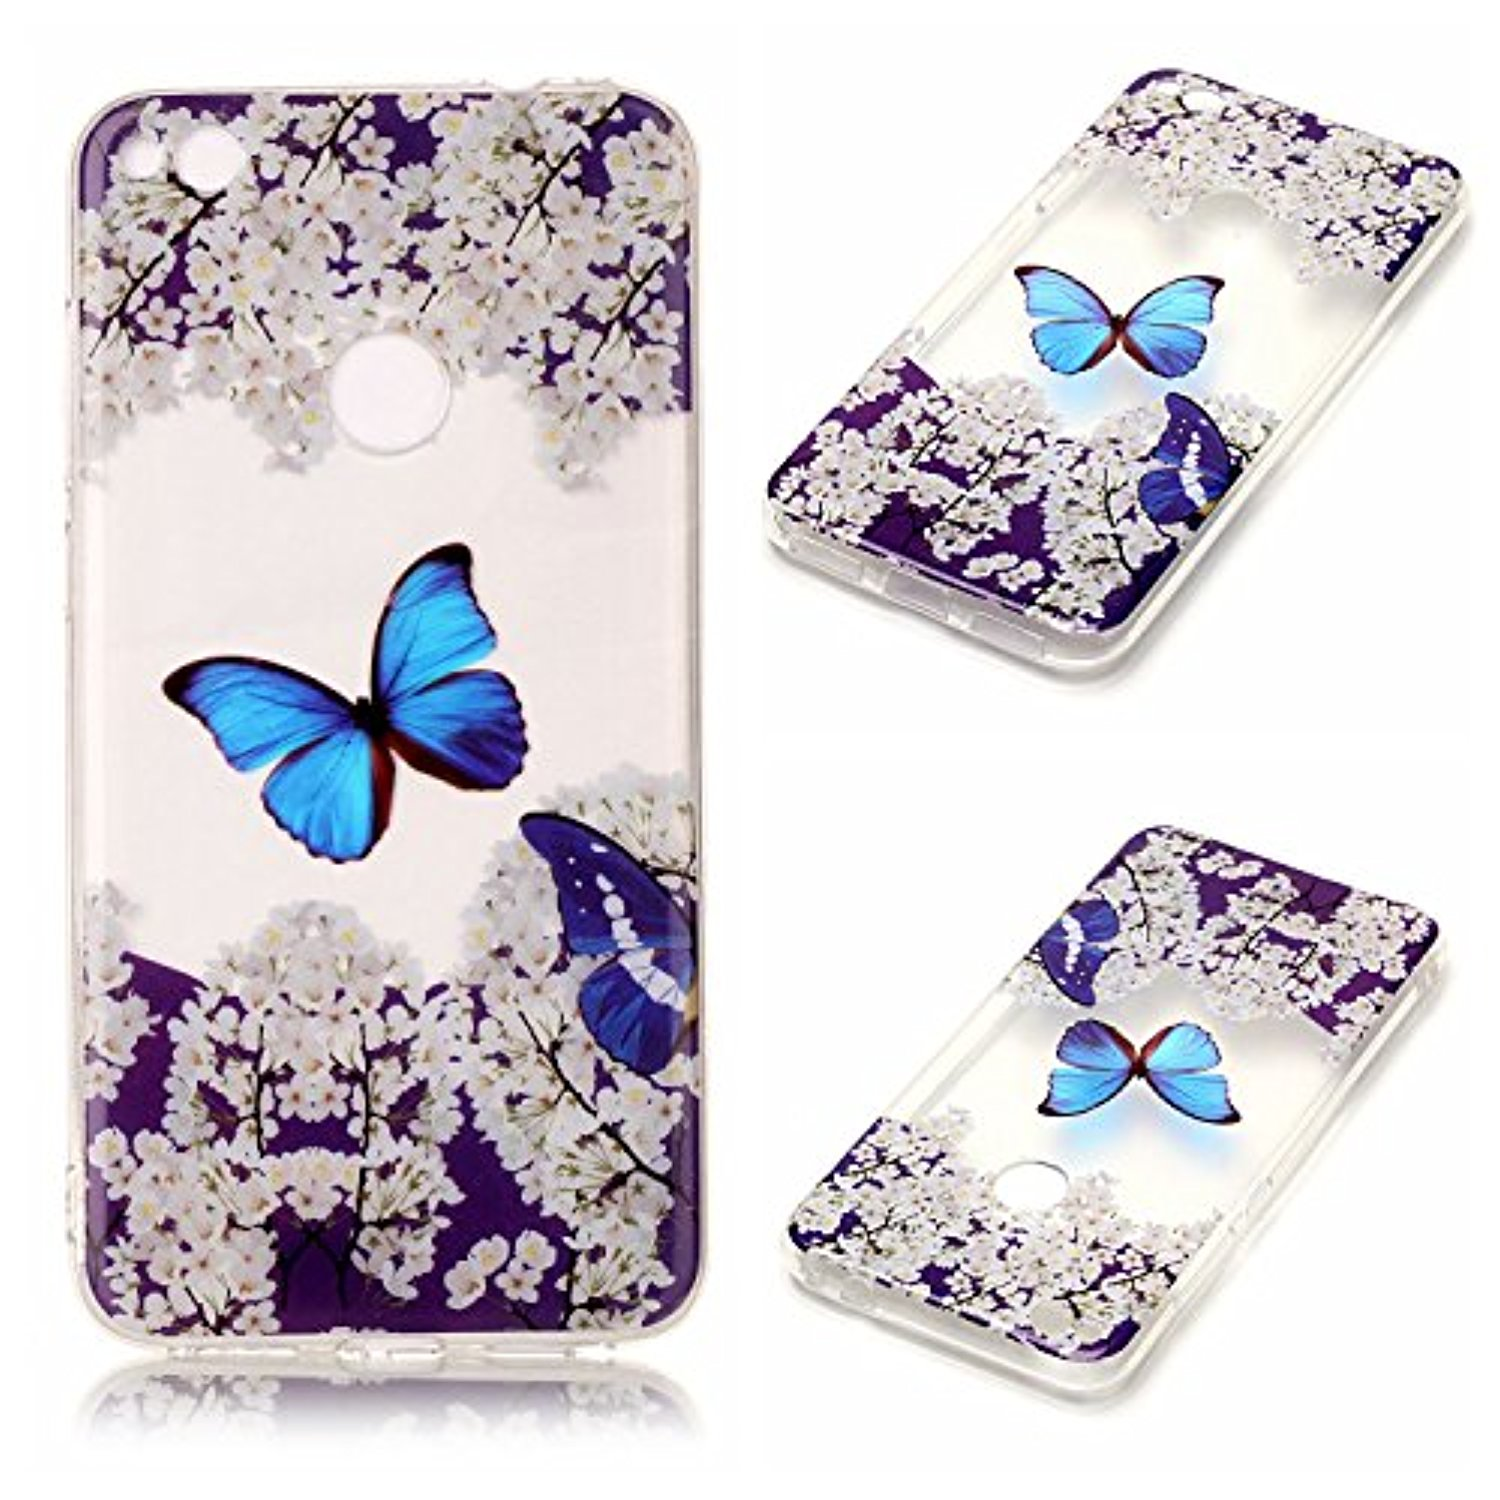 Coque gel pour huawei p8 lite 2017 coquille en silicone for Housse huawei p8 lite 2017